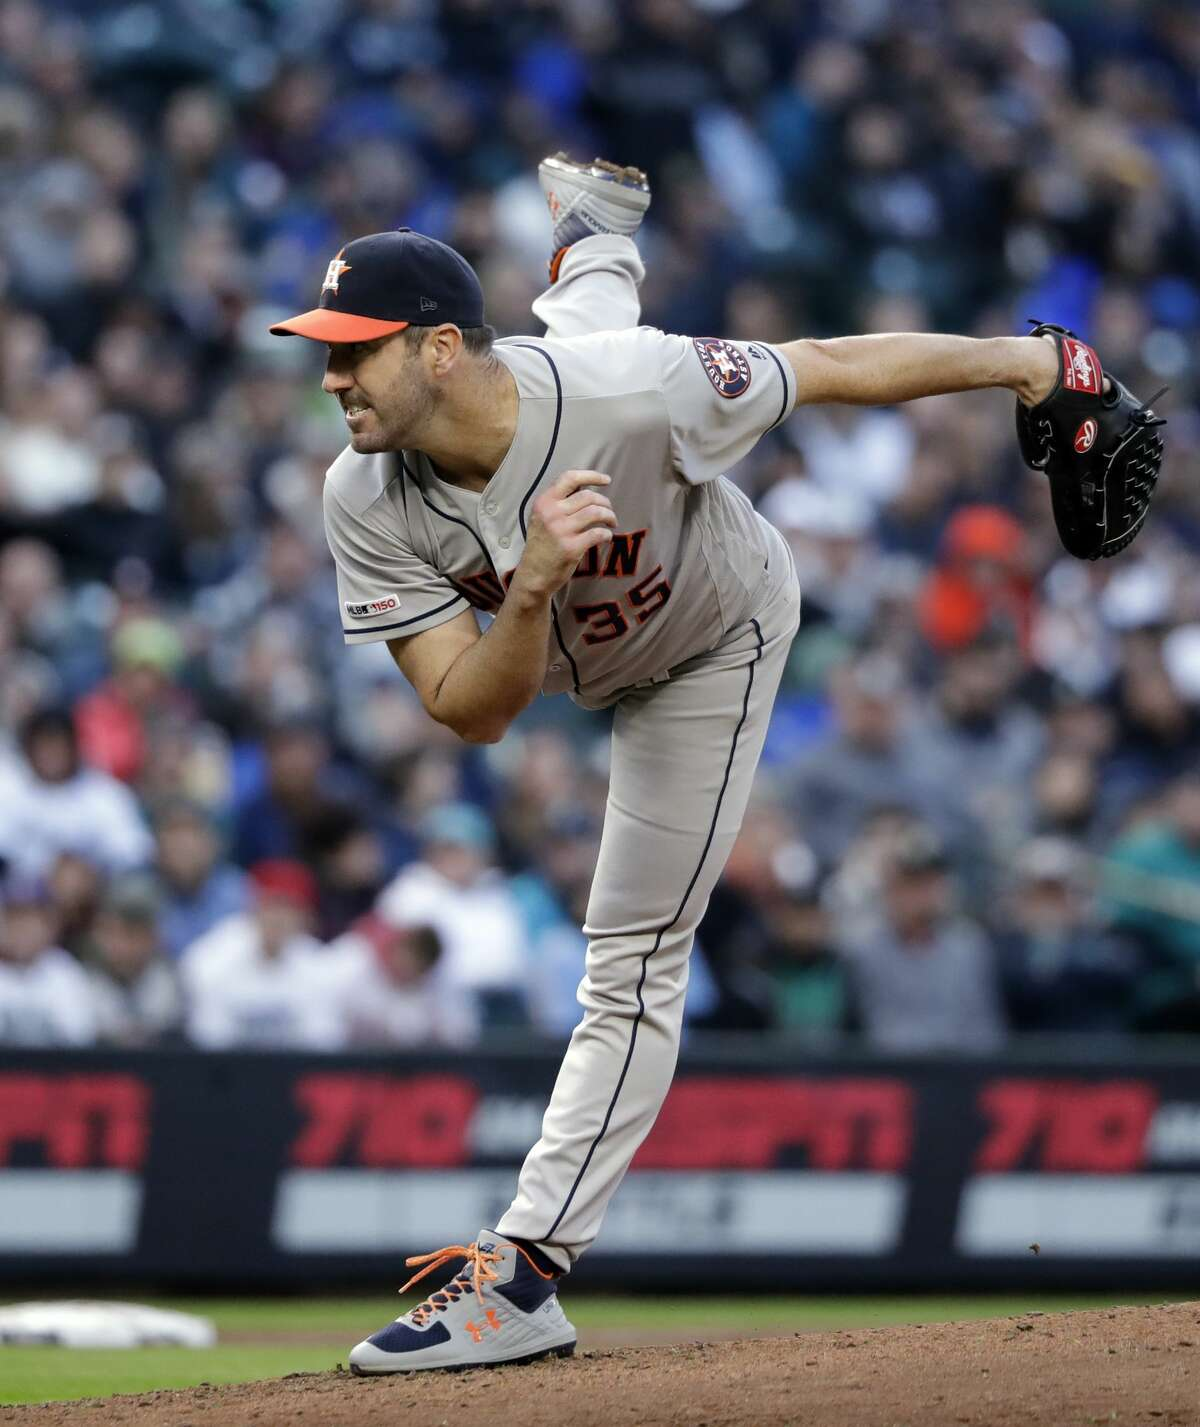 Houston Astros starting pitcher Justin Verlander throws against the Seattle Mariners in a baseball game Saturday, April 13, 2019, in Seattle. (AP Photo/Elaine Thompson)